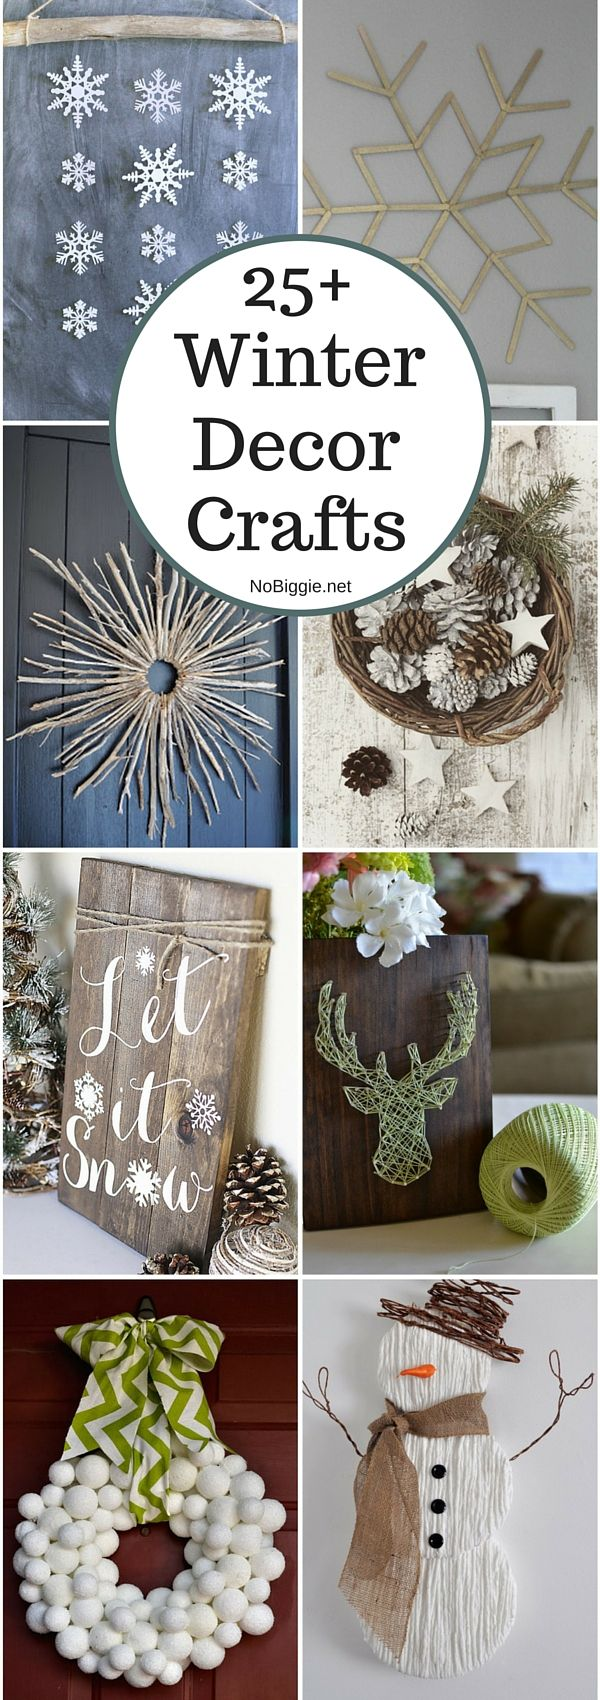 17 best ideas about january crafts on pinterest winter for 26 january decoration